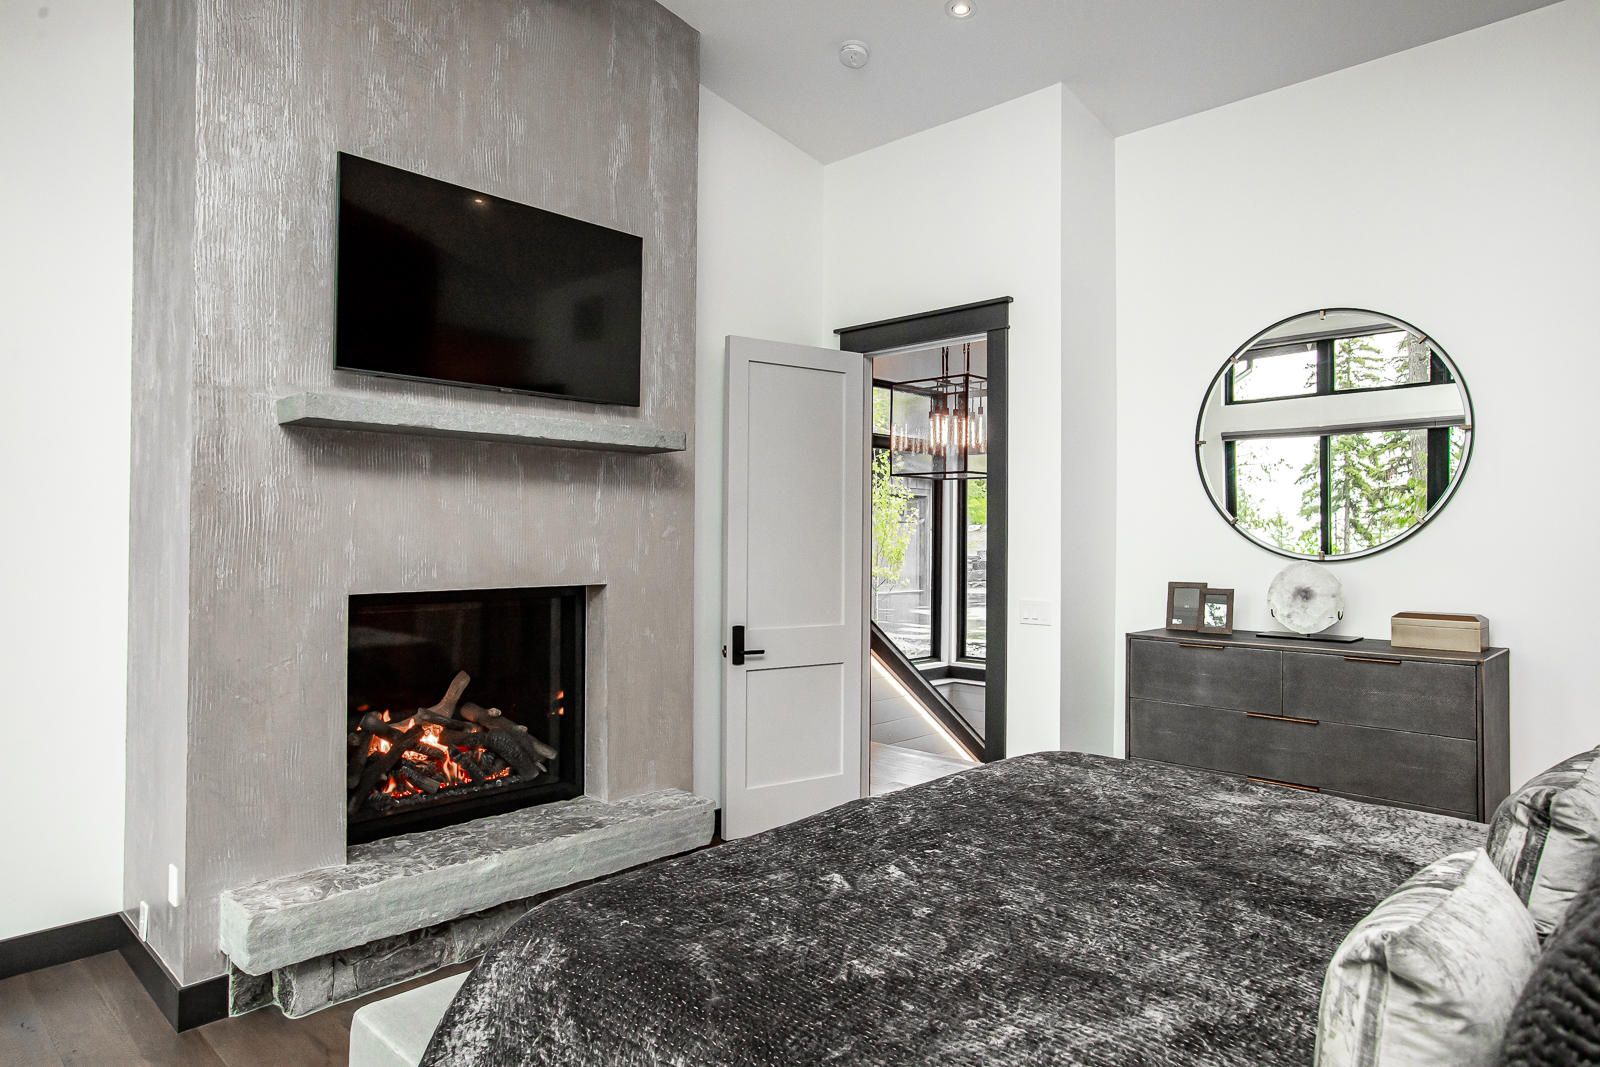 Bed 2 Fireplace